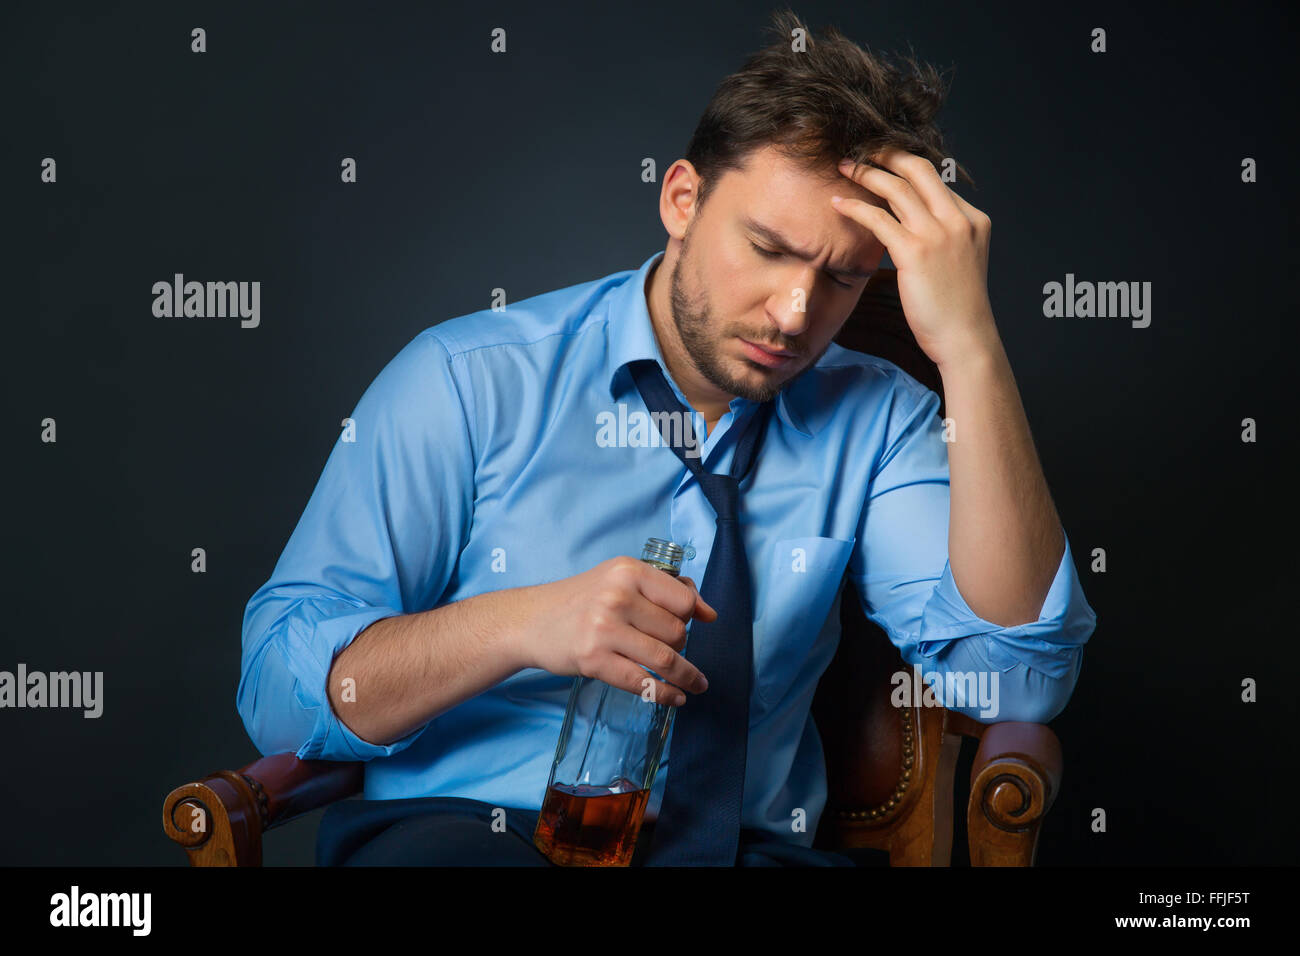 Drunk man drinking alcohol - Stock Image